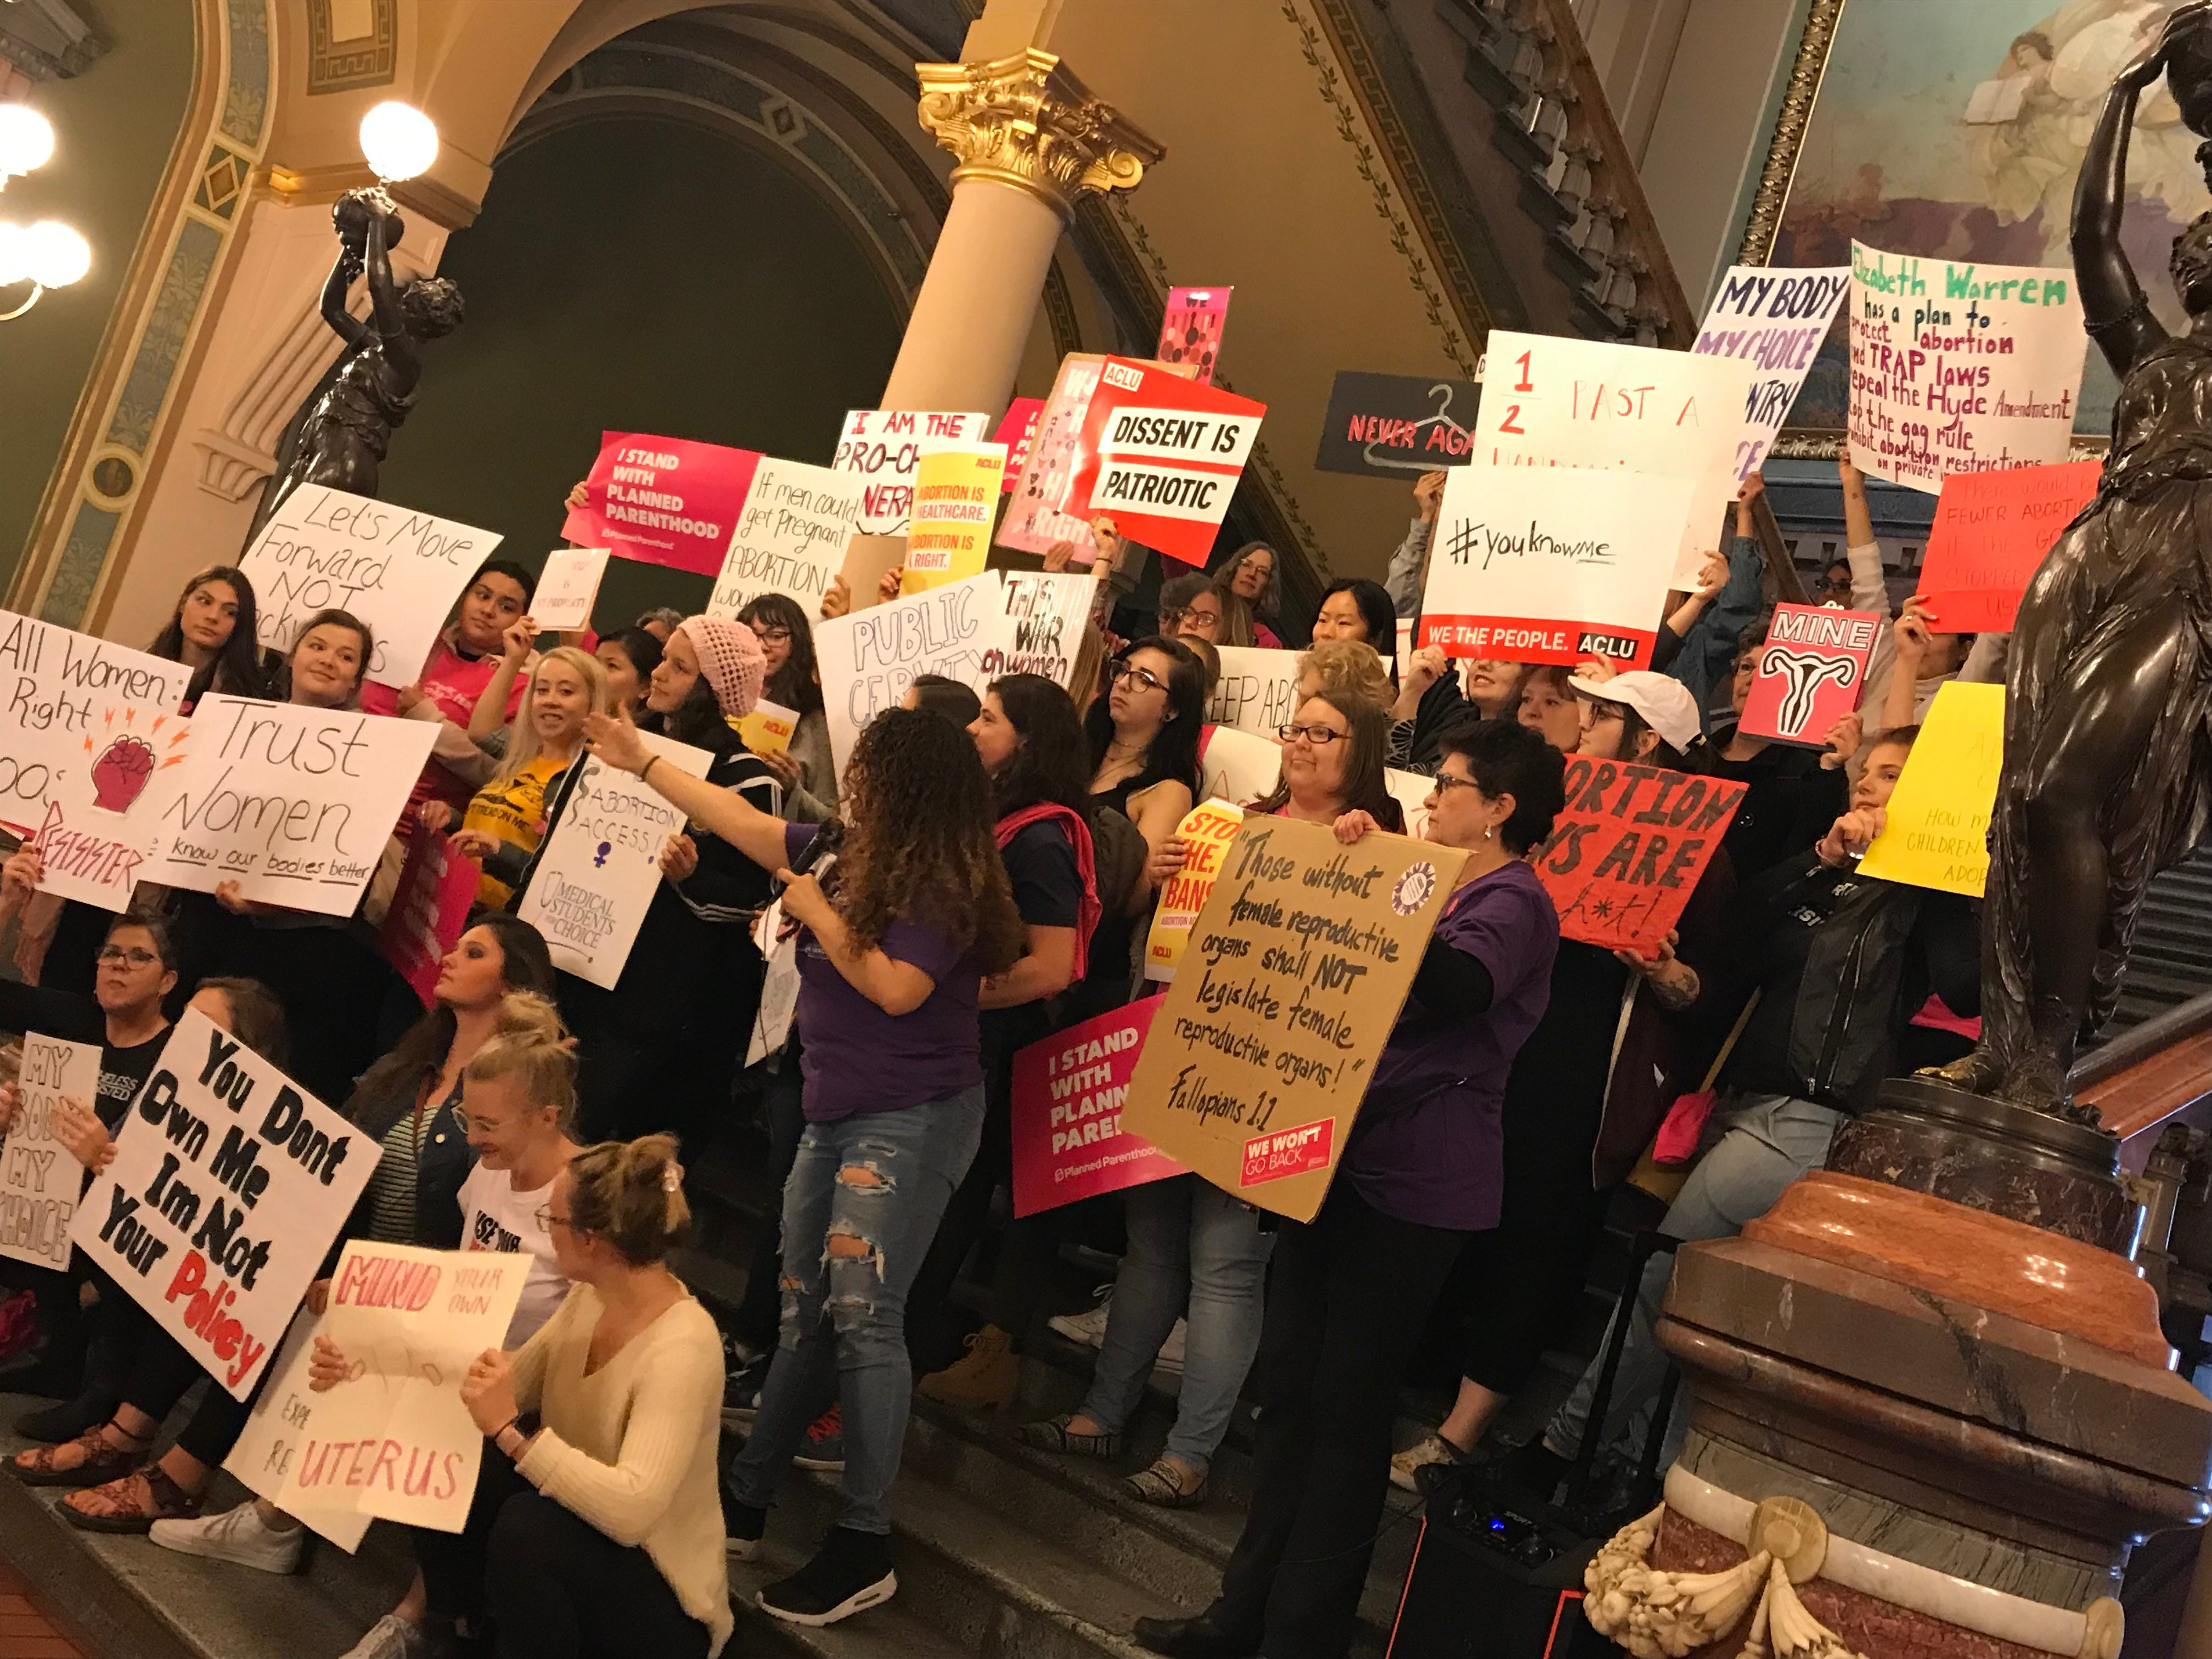 As abortion bans multiply, increasingly diverse voices are calling to protect women's rights